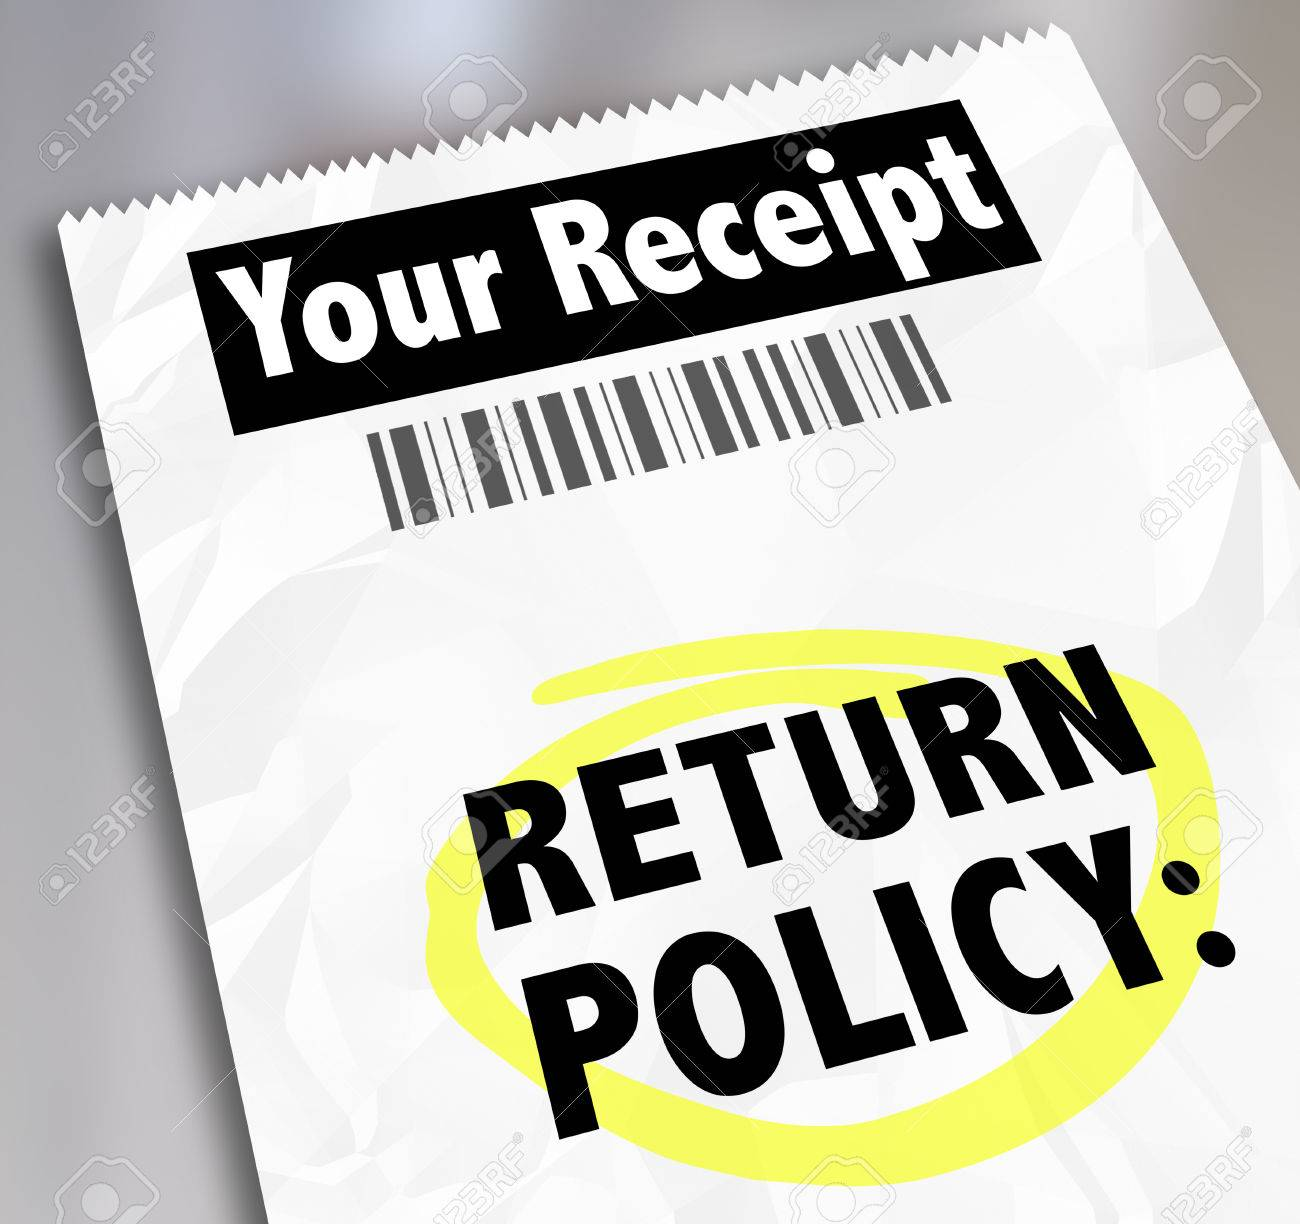 return policy words on a store receipt or proof of purchase to